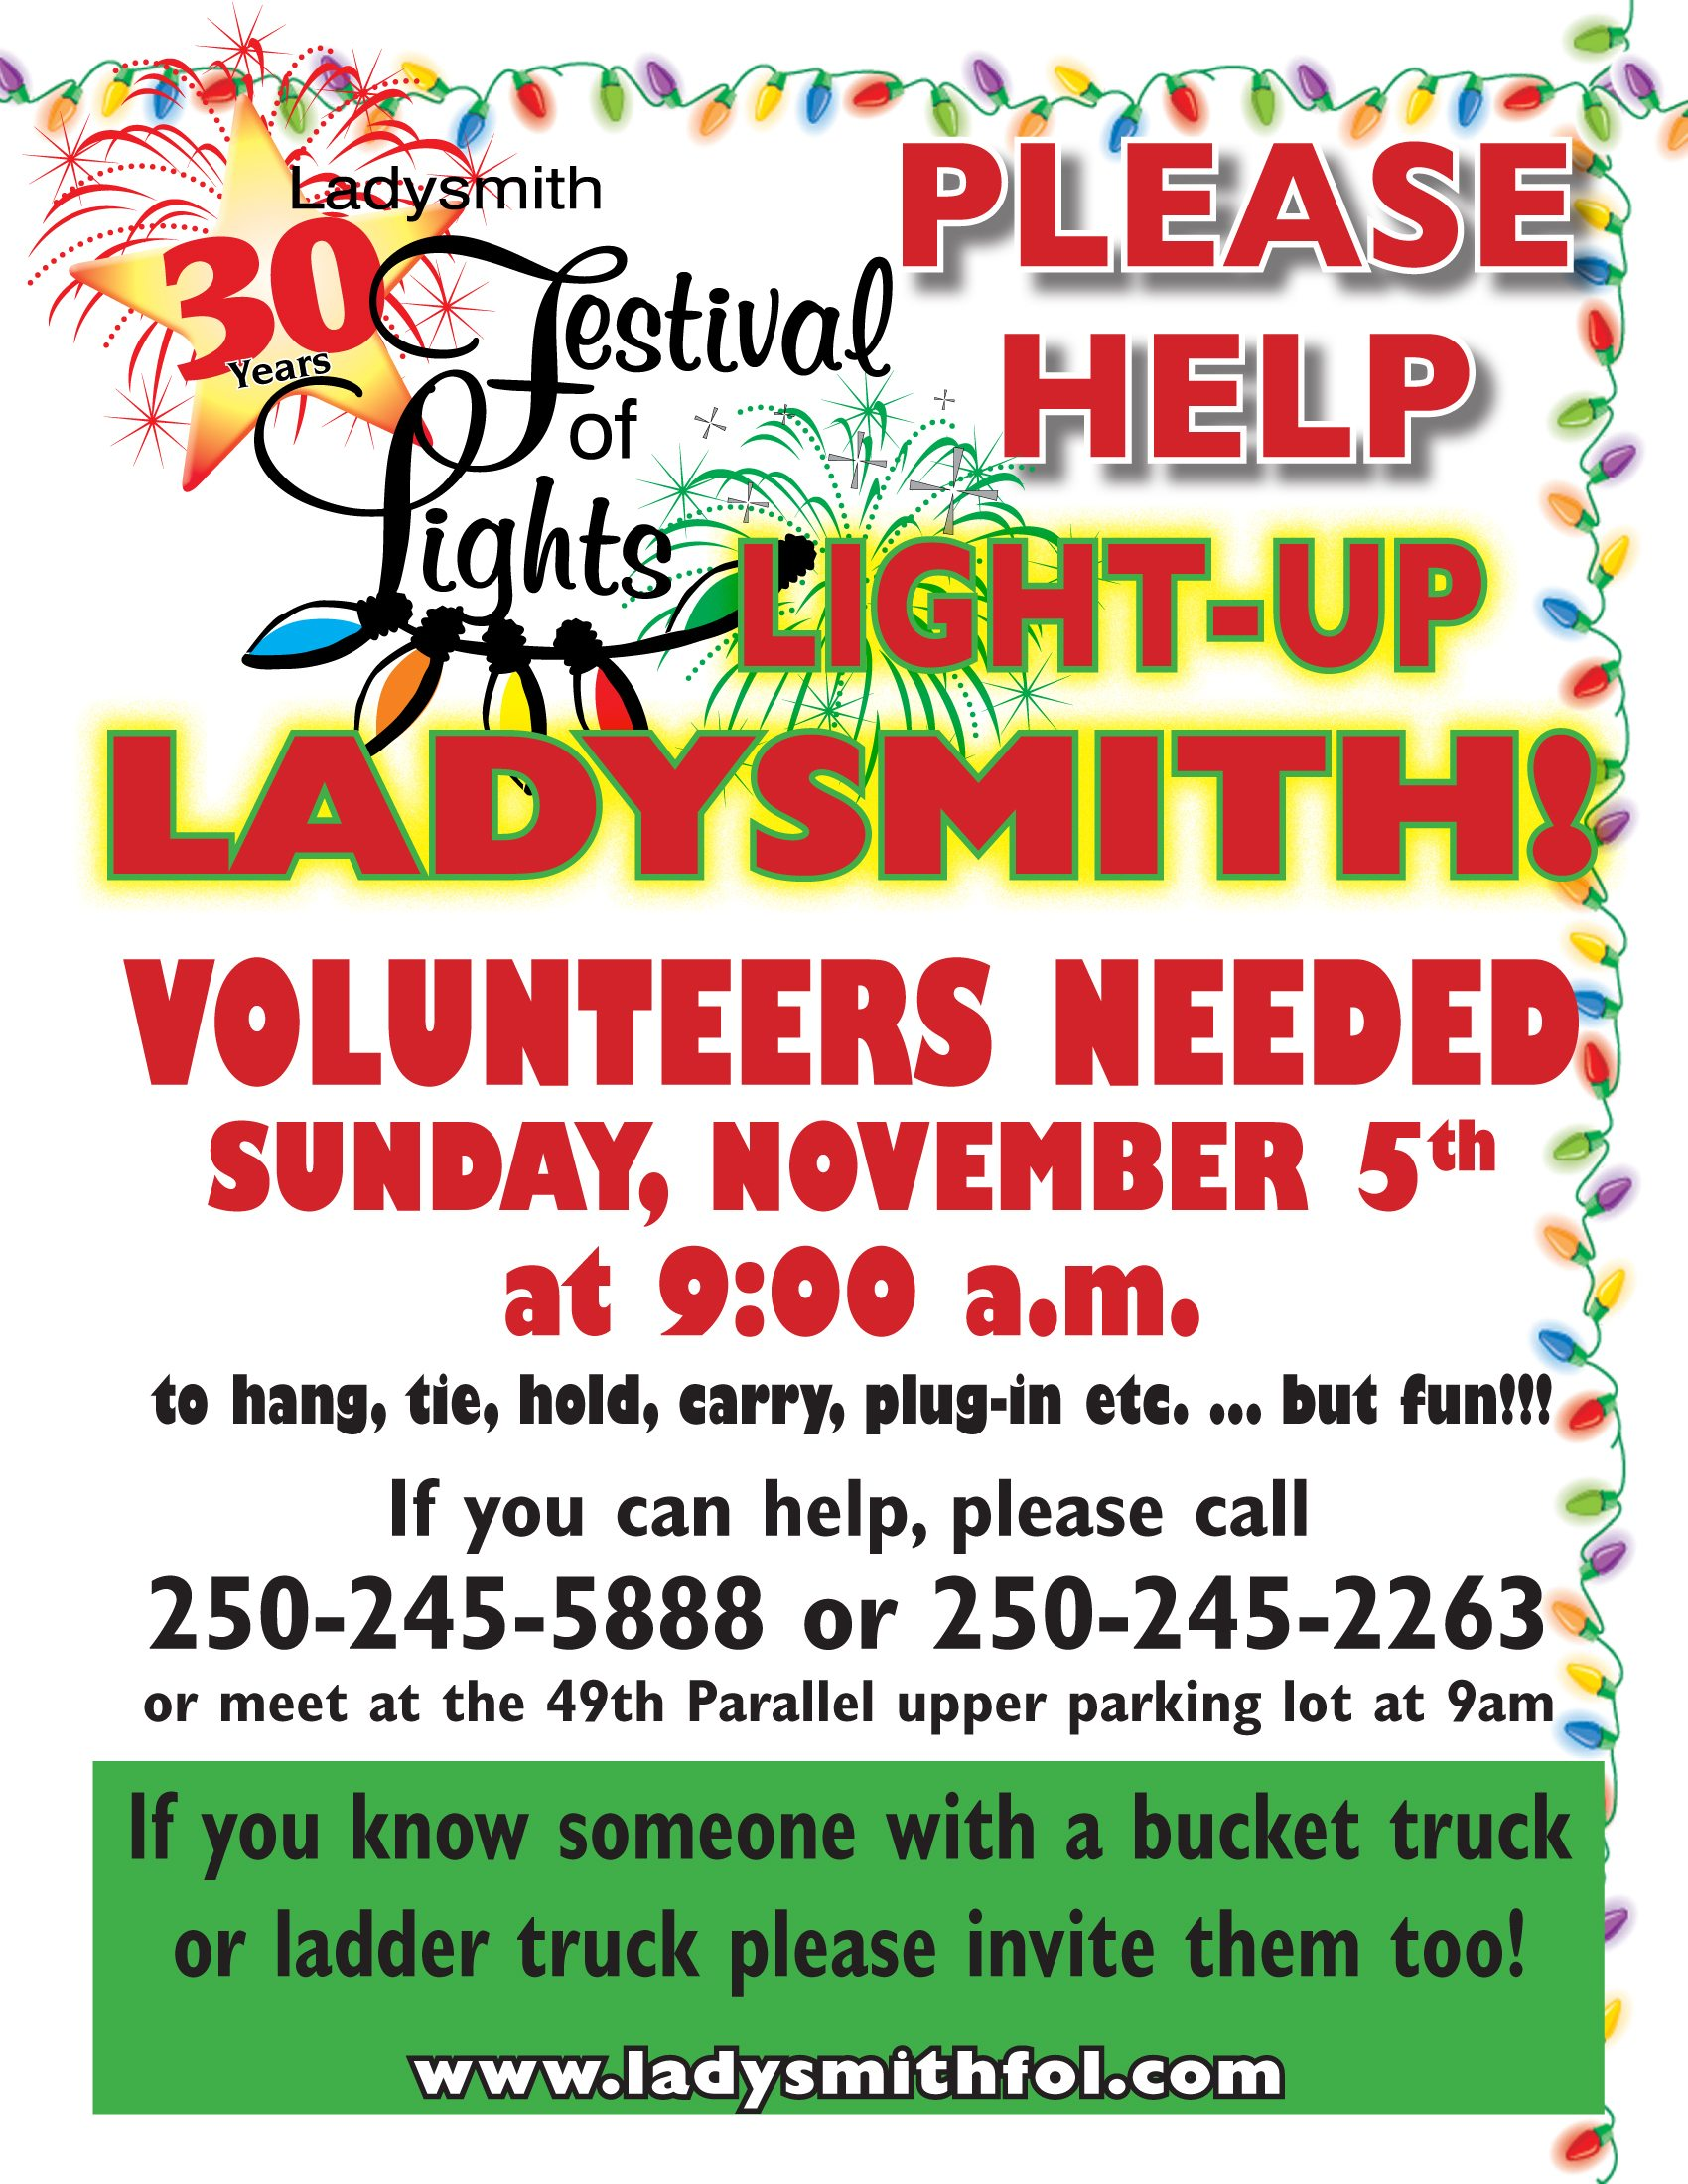 Ladysmith Festival of Lights community work party - My Cowichan ...